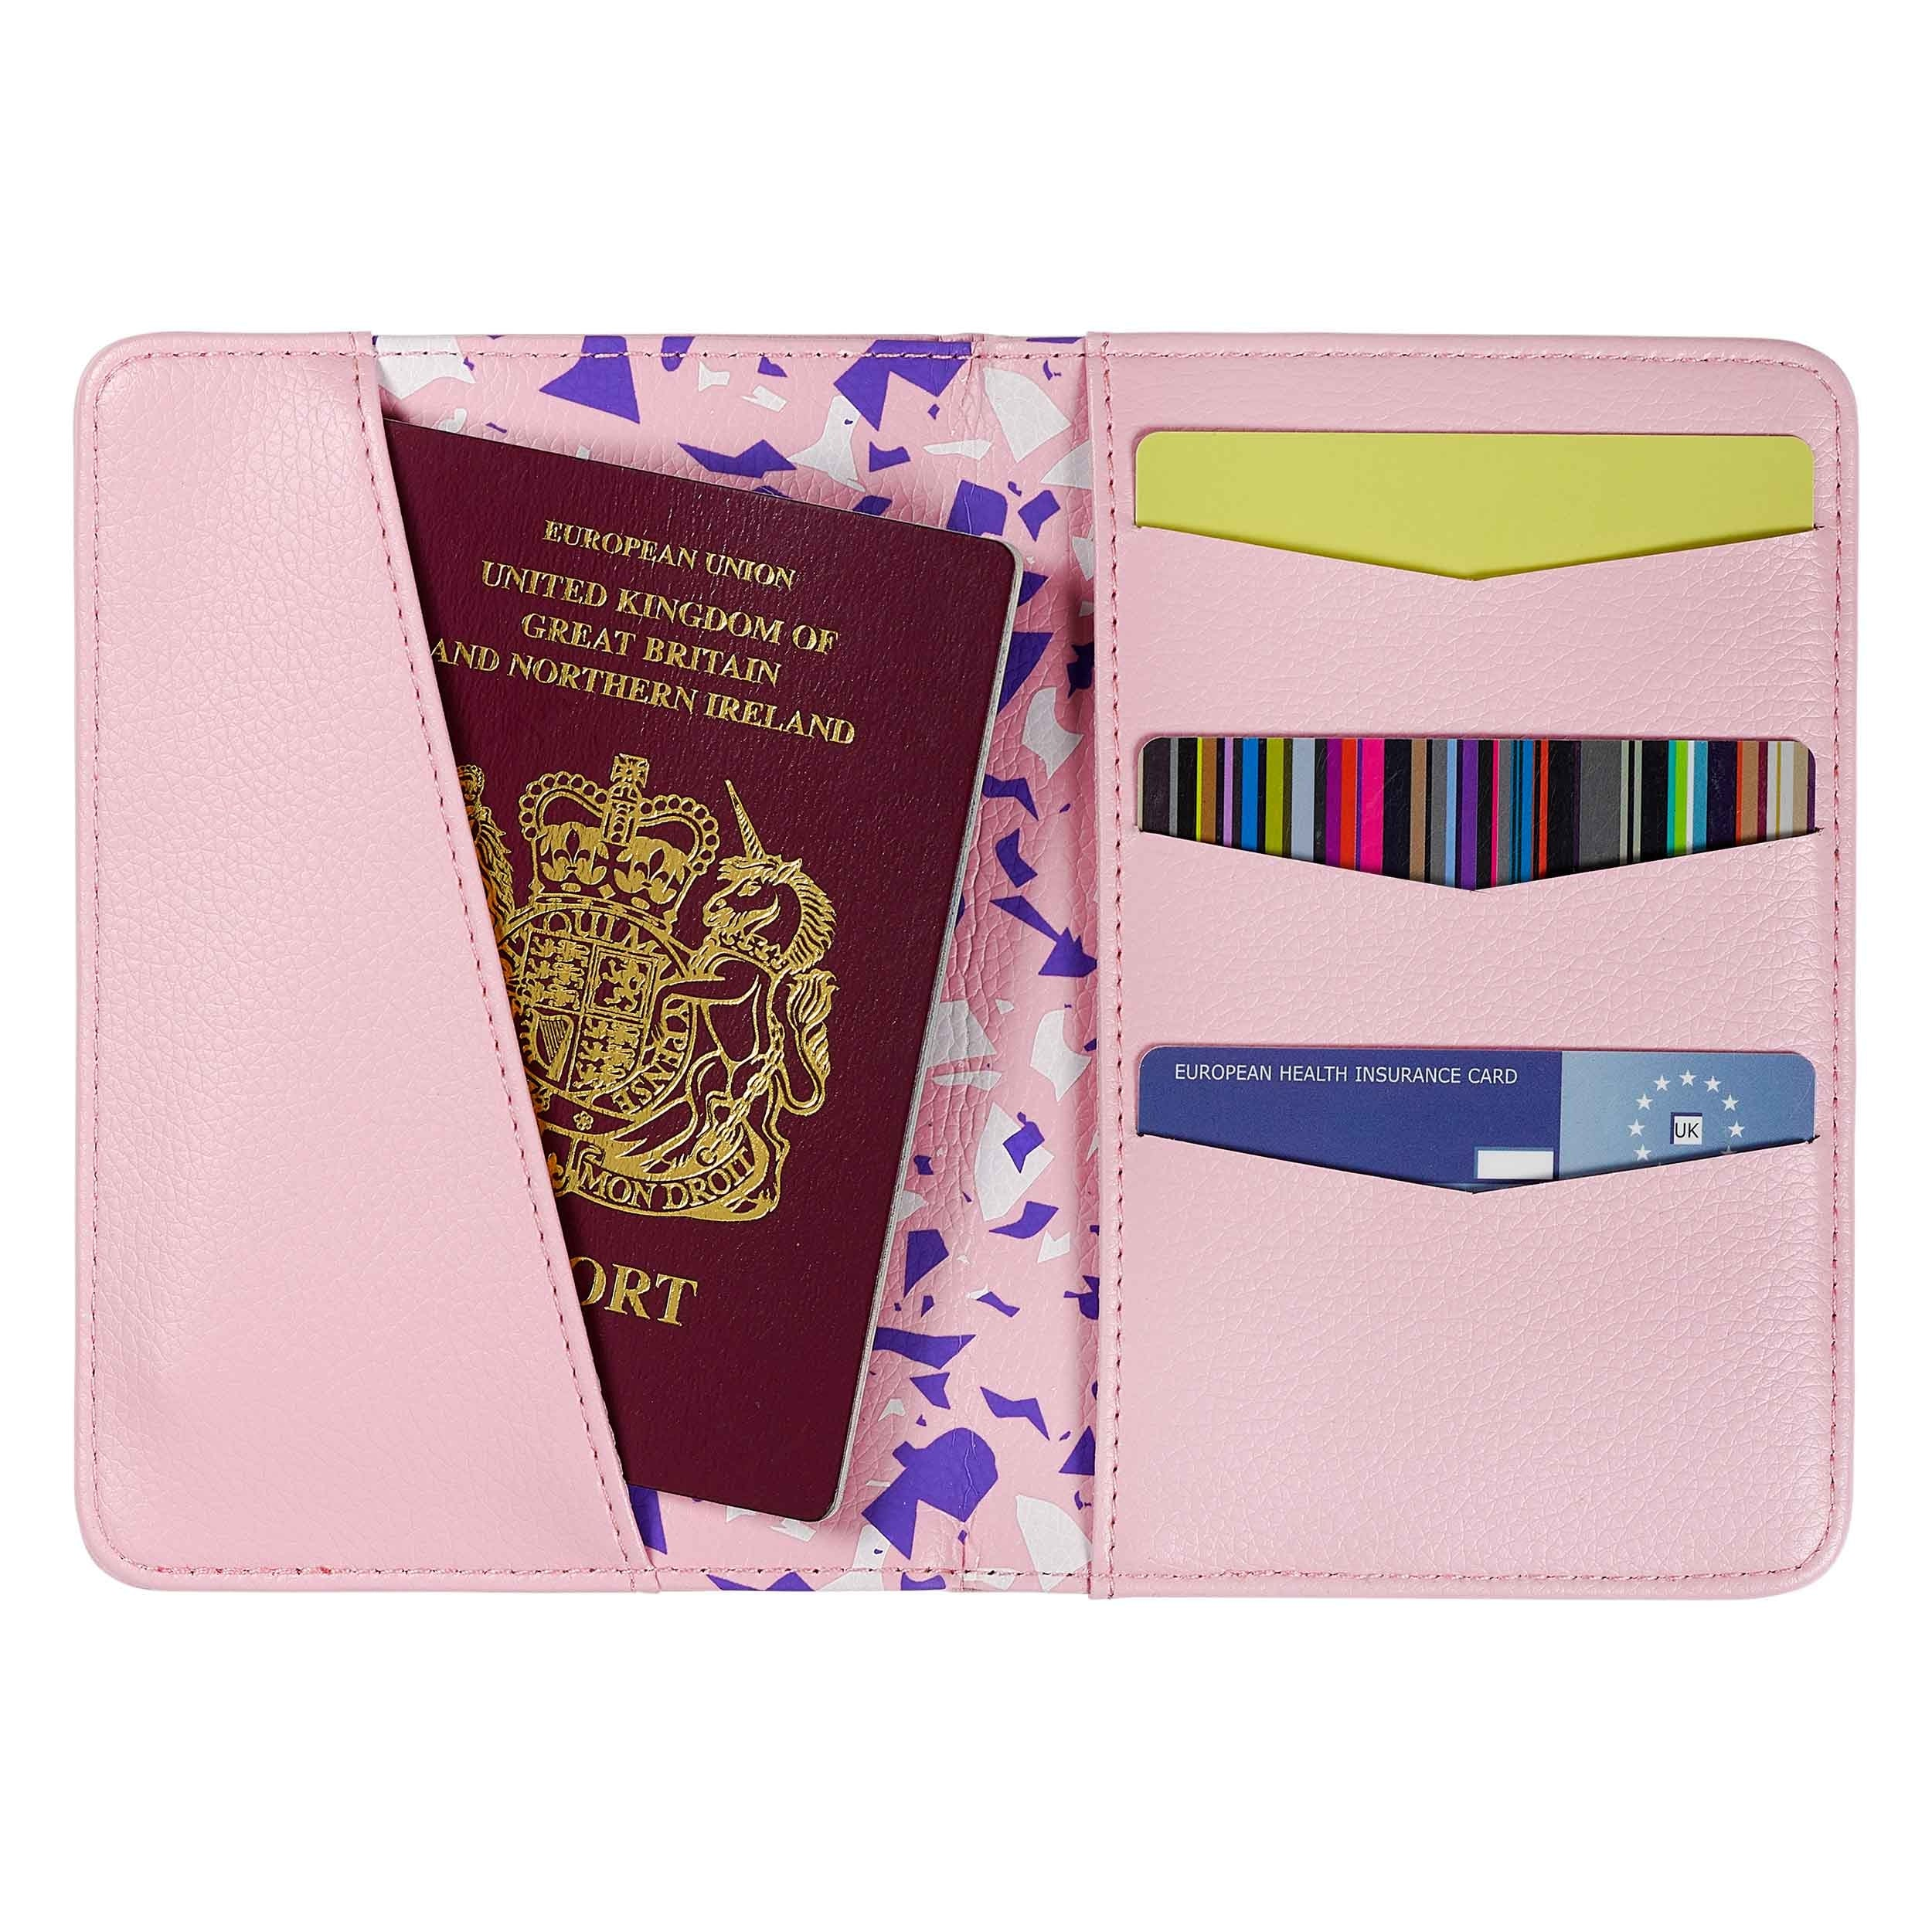 Are We There Yet Passport Cover